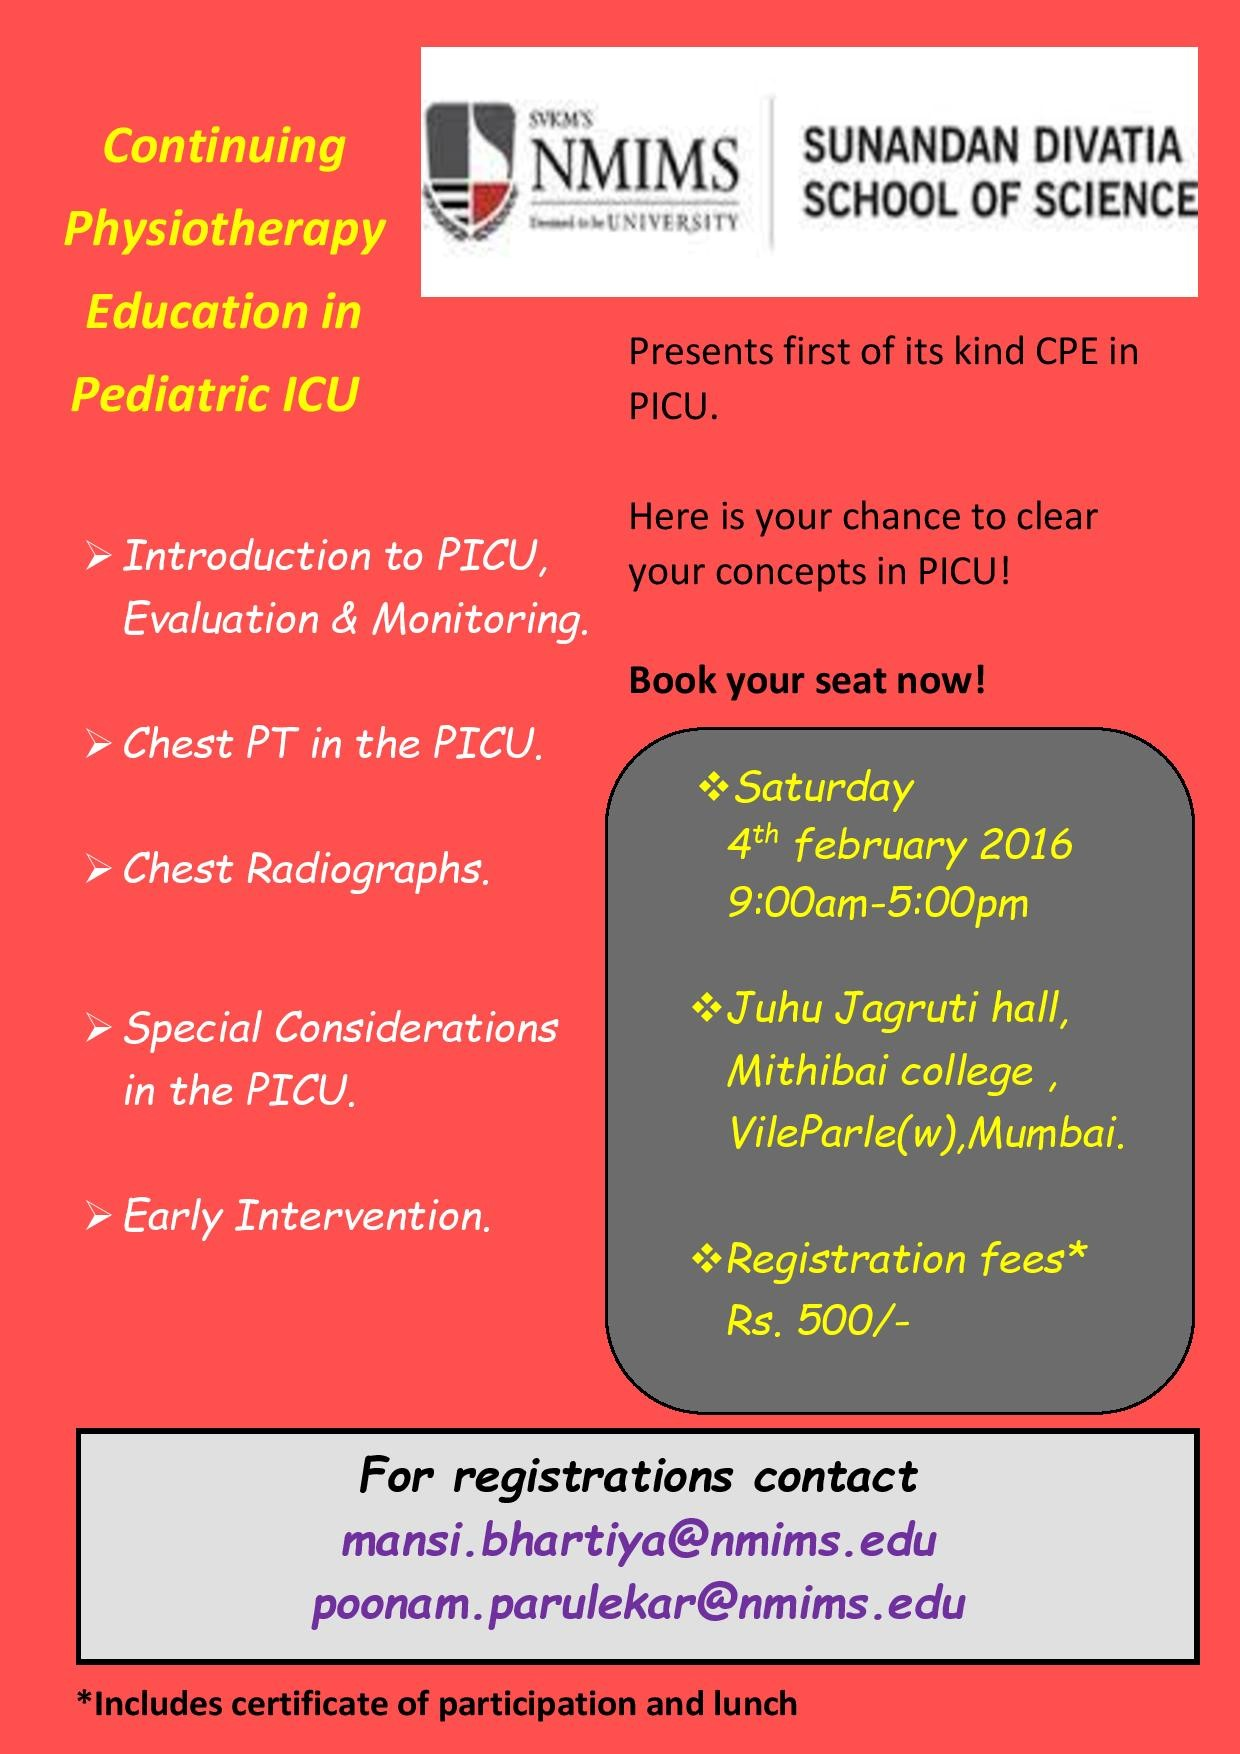 Continuing Physiotherapy Education in Pediatric ICU